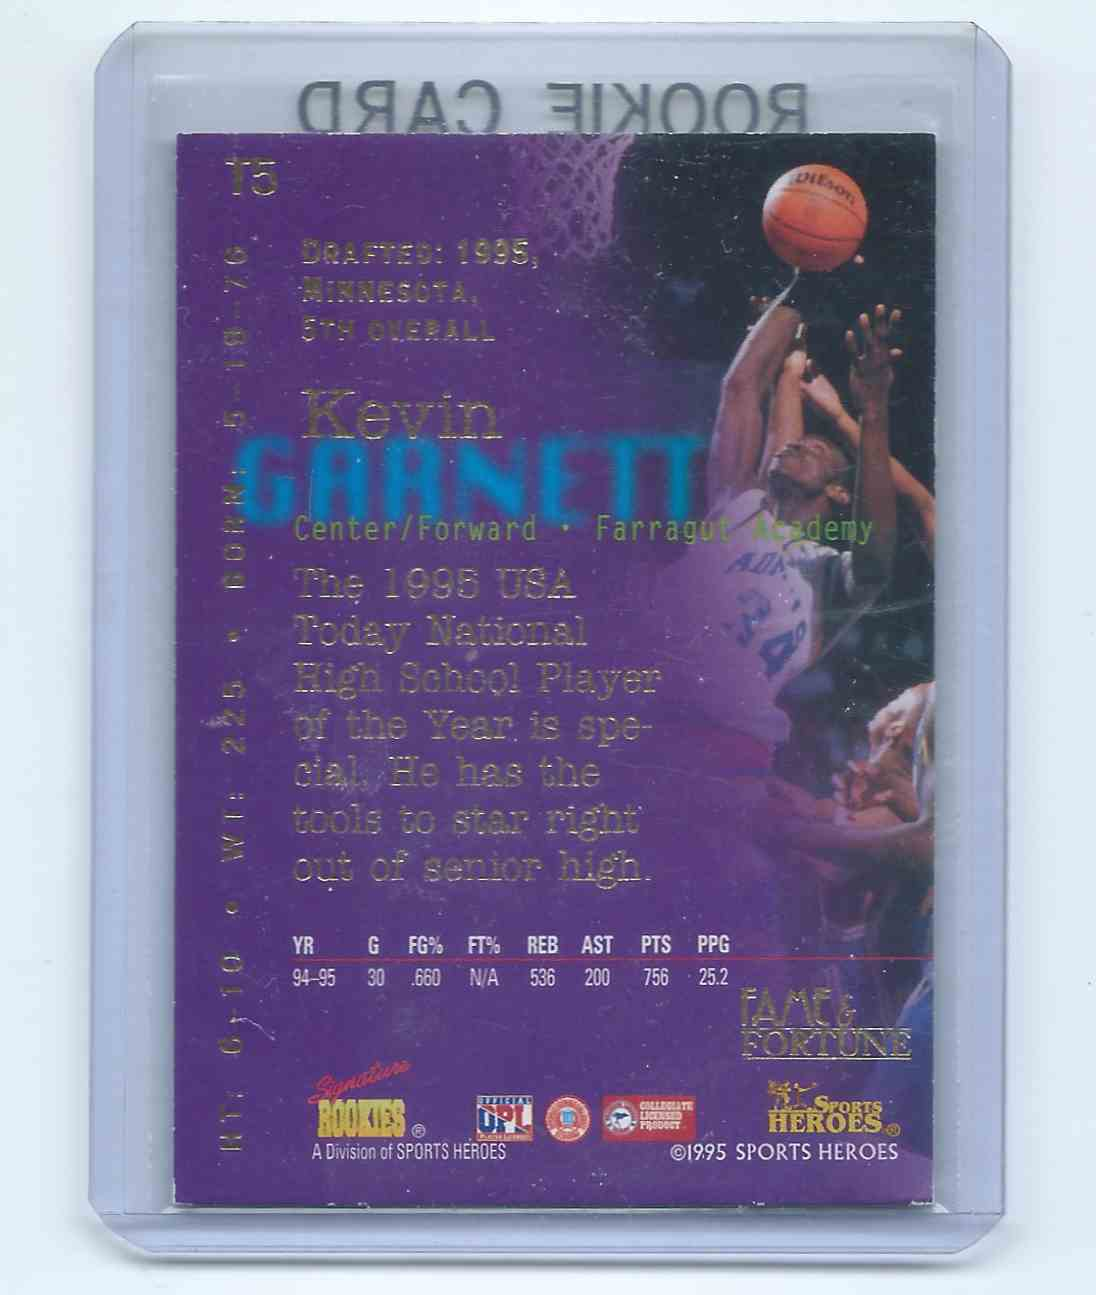 1995-96 Sports Heroes Signature Rookies Fame & Fortune - Top Five Kevin Garnett (Rc) Rookie Card #T5 card back image